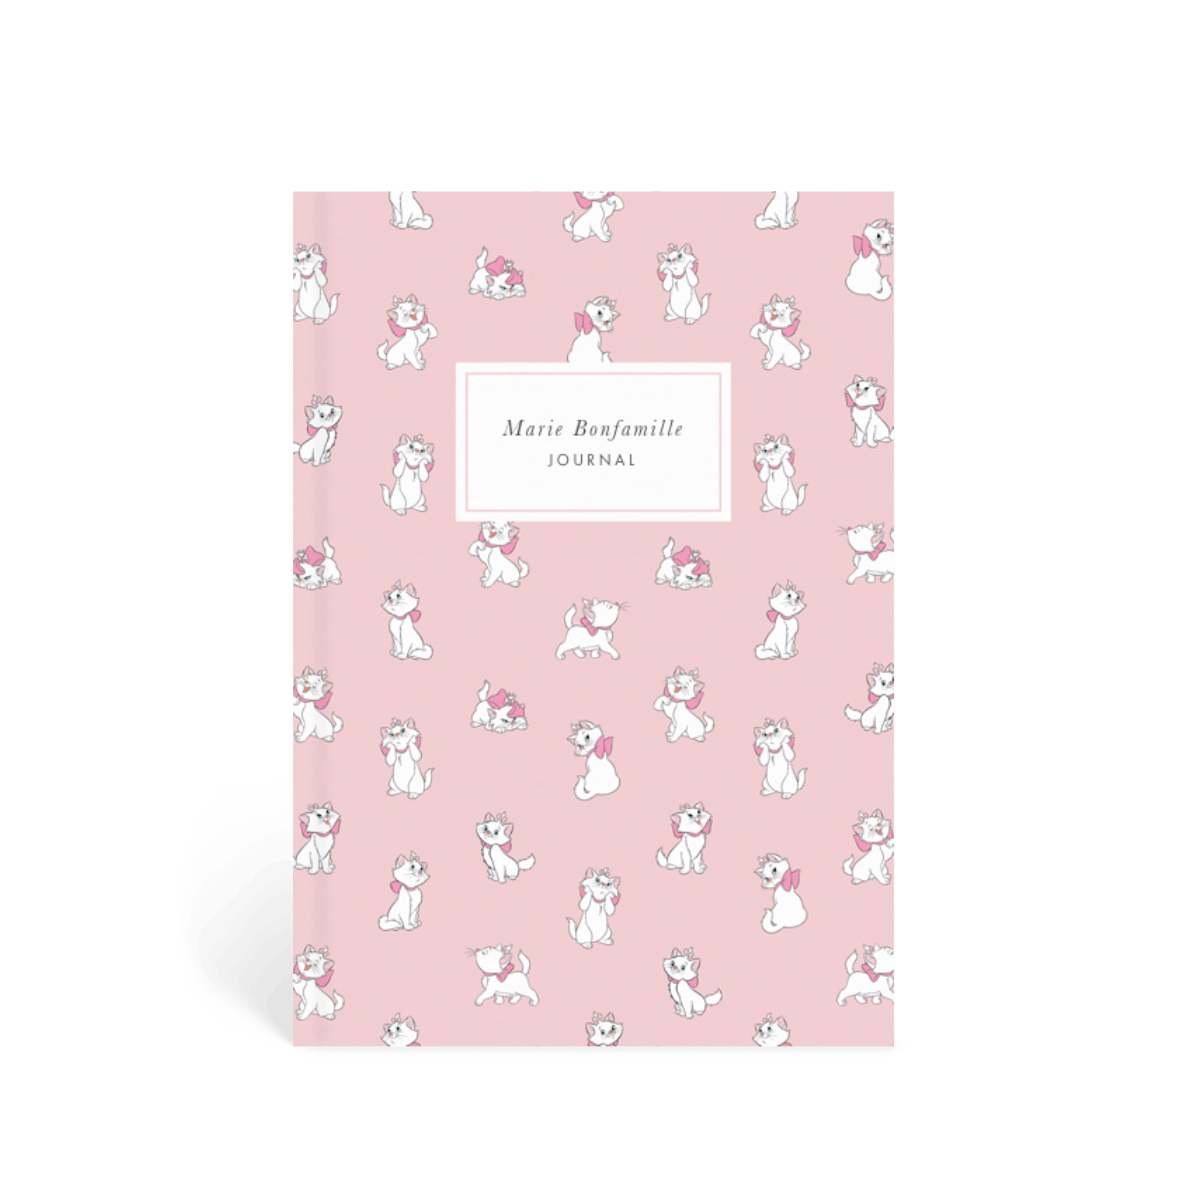 Https%3a%2f%2fwww.papier.com%2fproduct image%2f51312%2f25%2fmarie aristocats 12567 vorderseite 1540477311.png?ixlib=rb 1.1